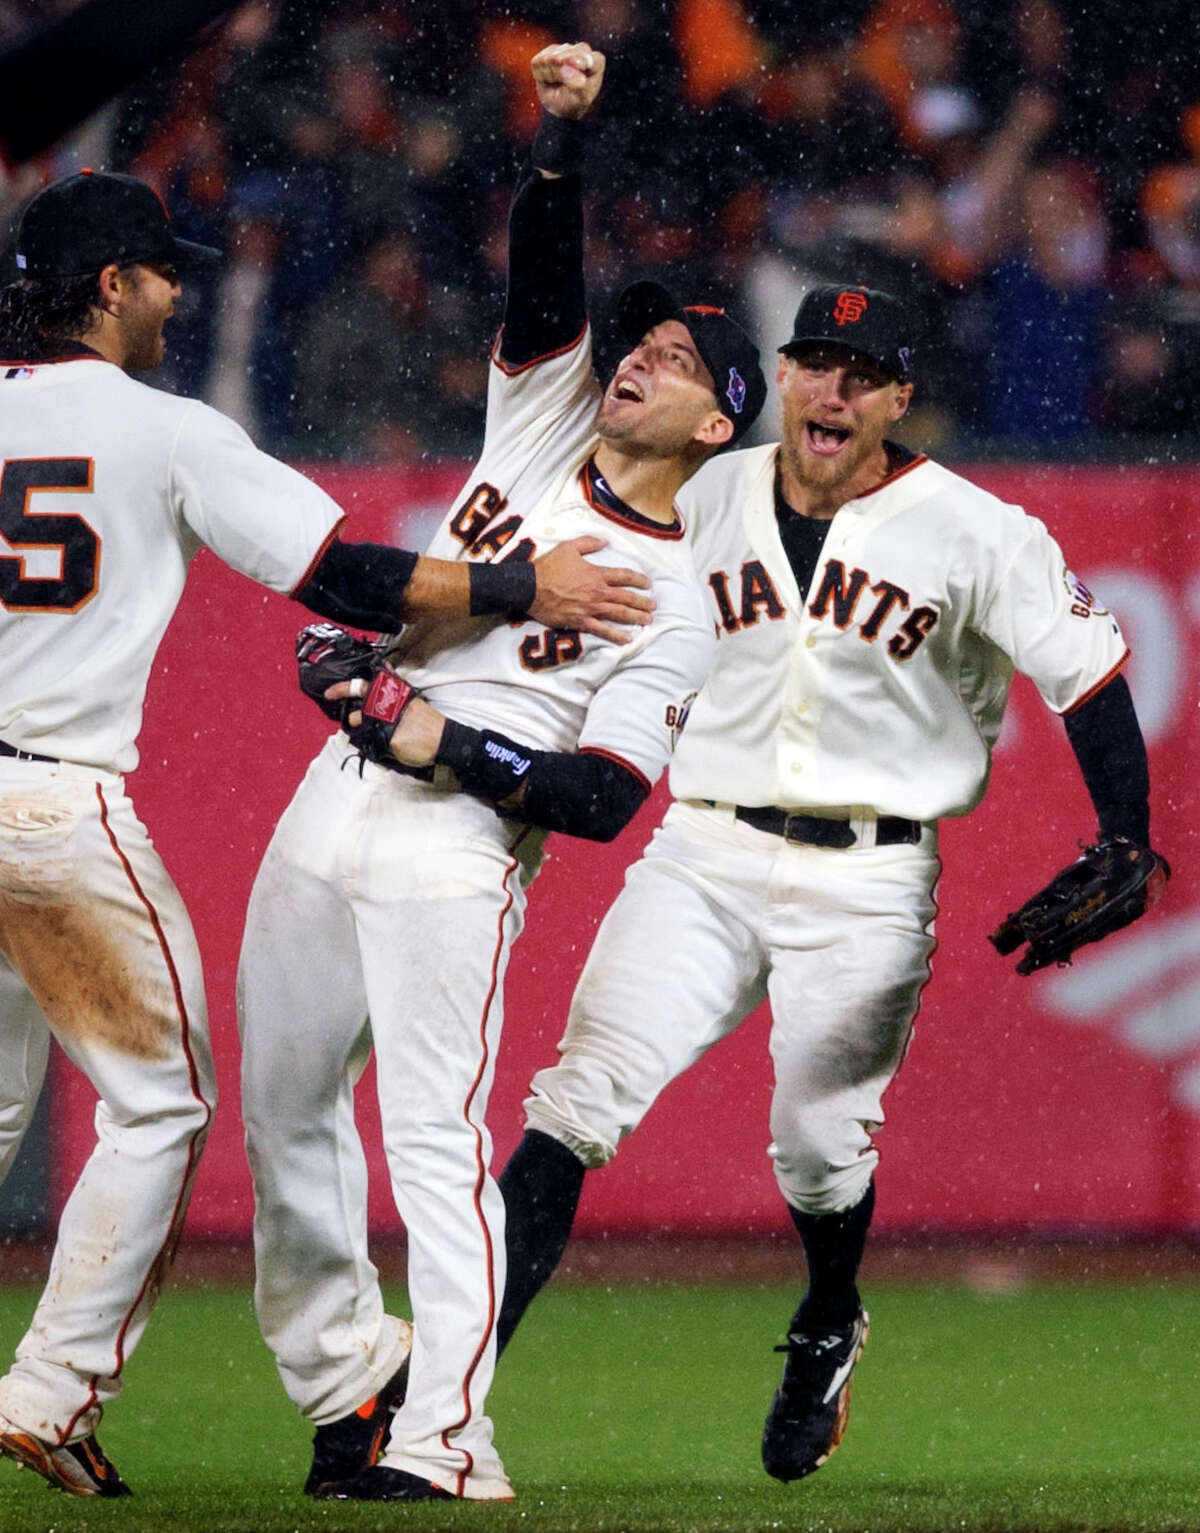 9. Marco Scutaro in the rain - the indelible image from the 2012 San Francisco Giants' NLCS victory over the St. Louis Cardinals. The Giants rallied back from down three games to one, clinching a spot in the World Series with a rainy 9-0 victory at home.